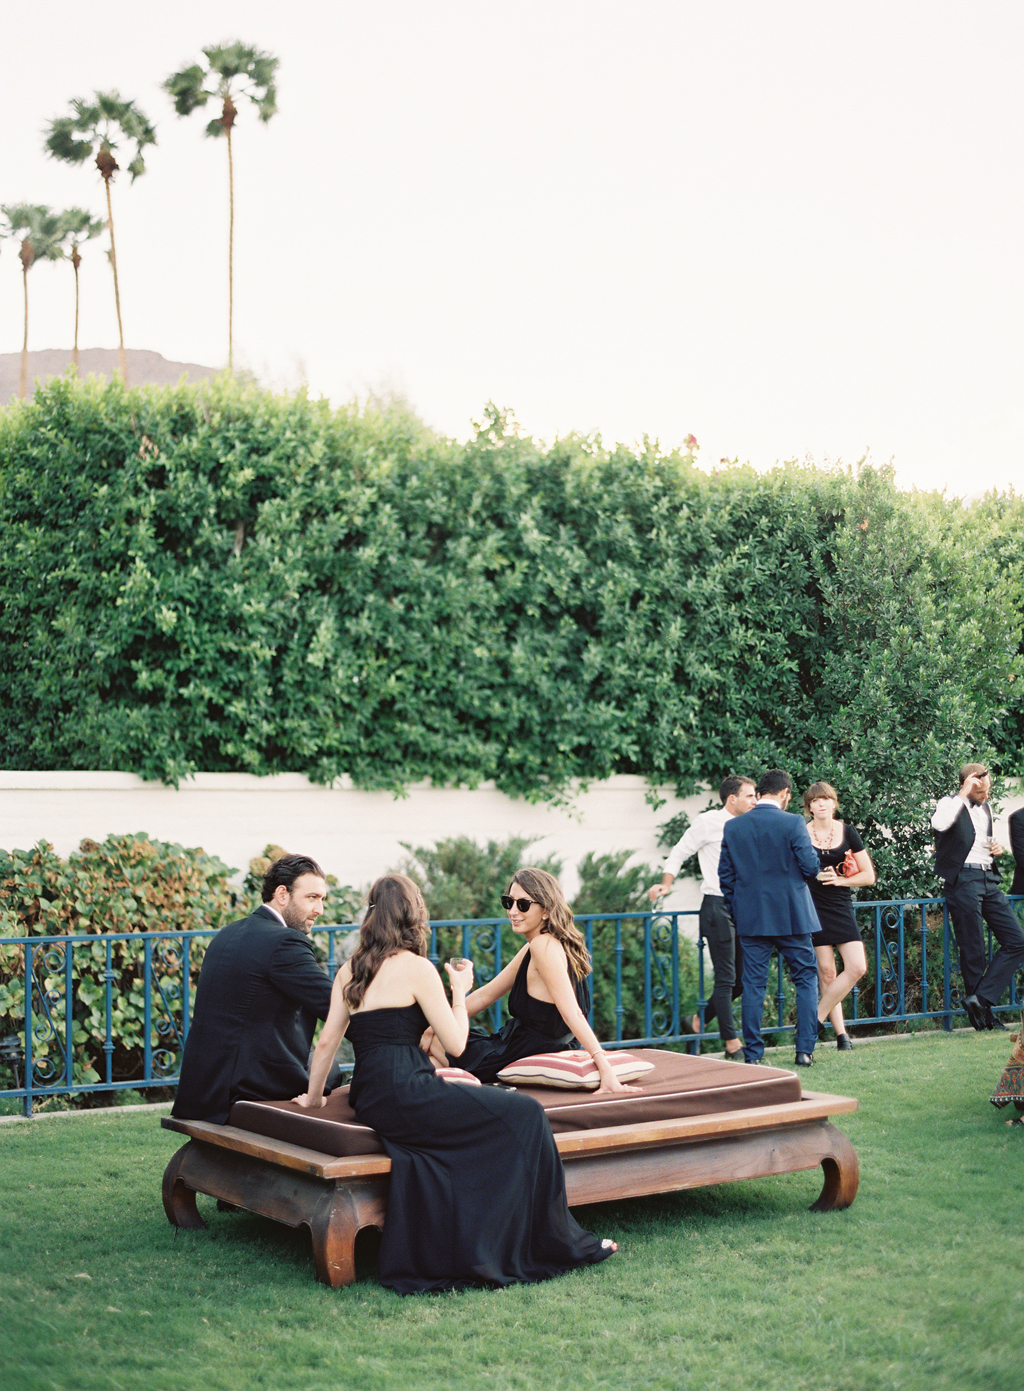 guests lounging during cocktail hour at a wedding in Palm Springs.